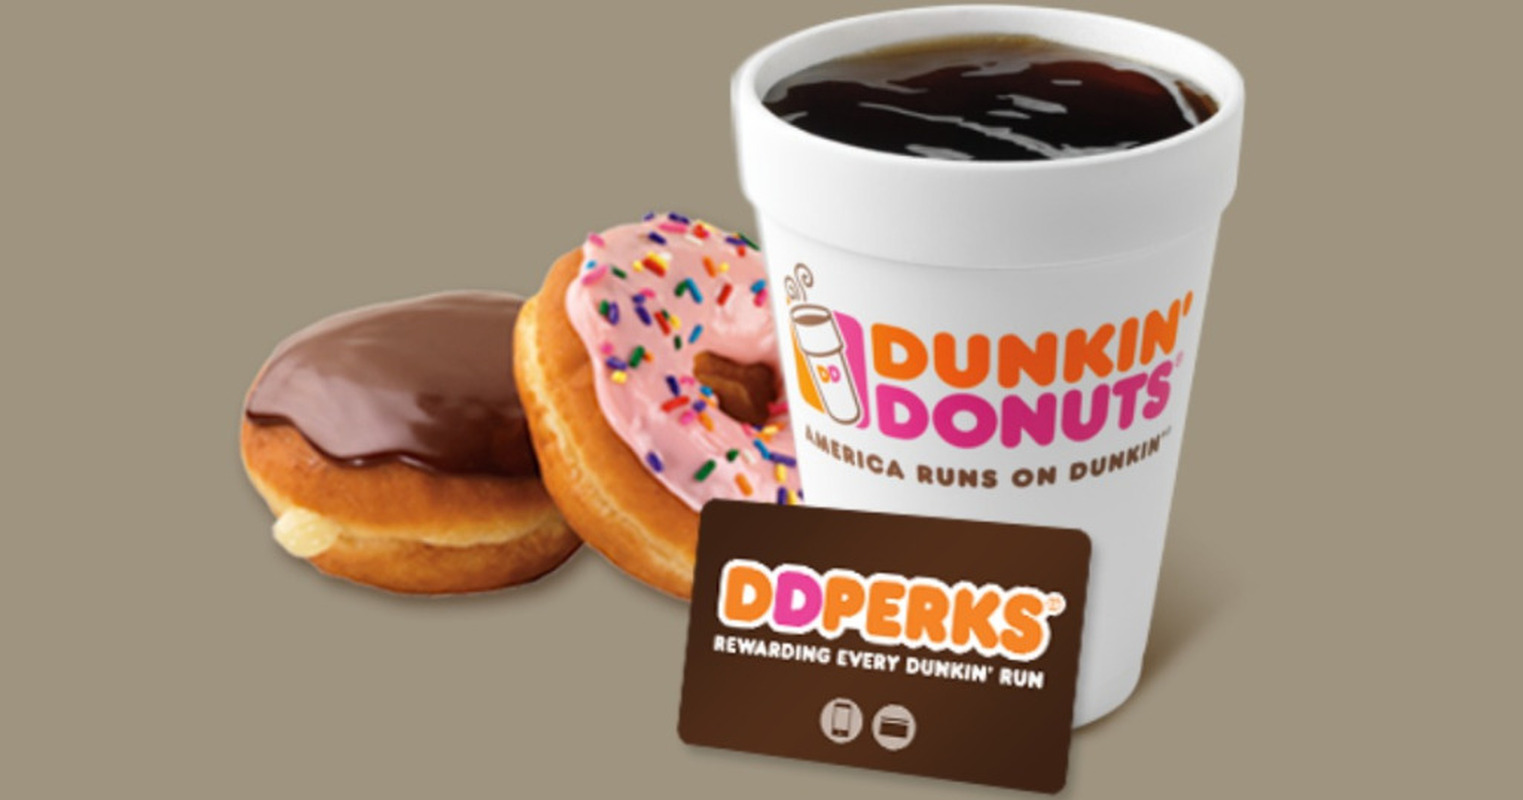 DD Perks for Dunkin' Donuts